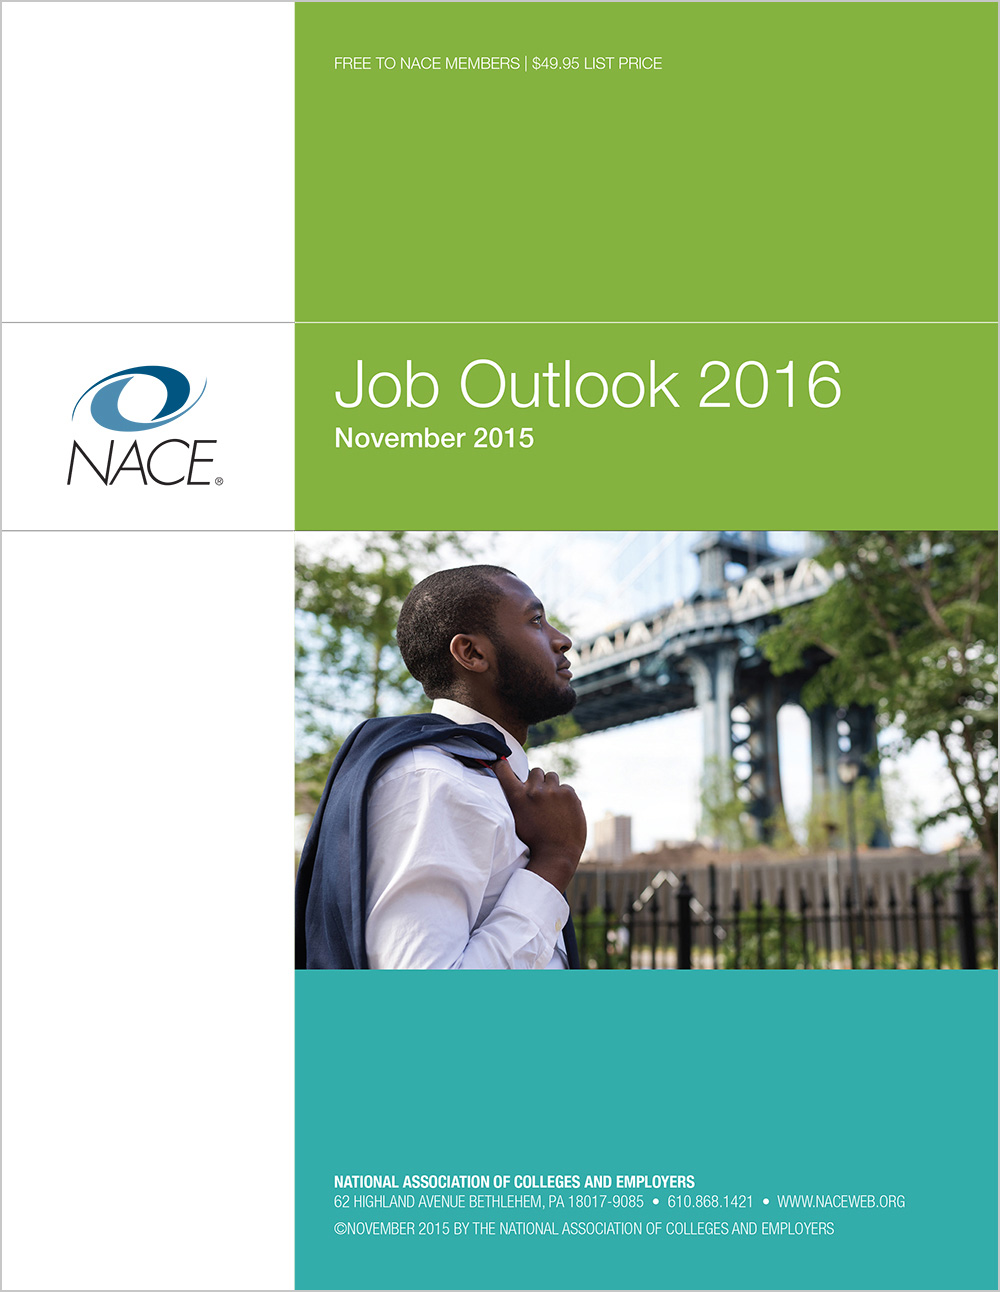 Job Outlook 2016